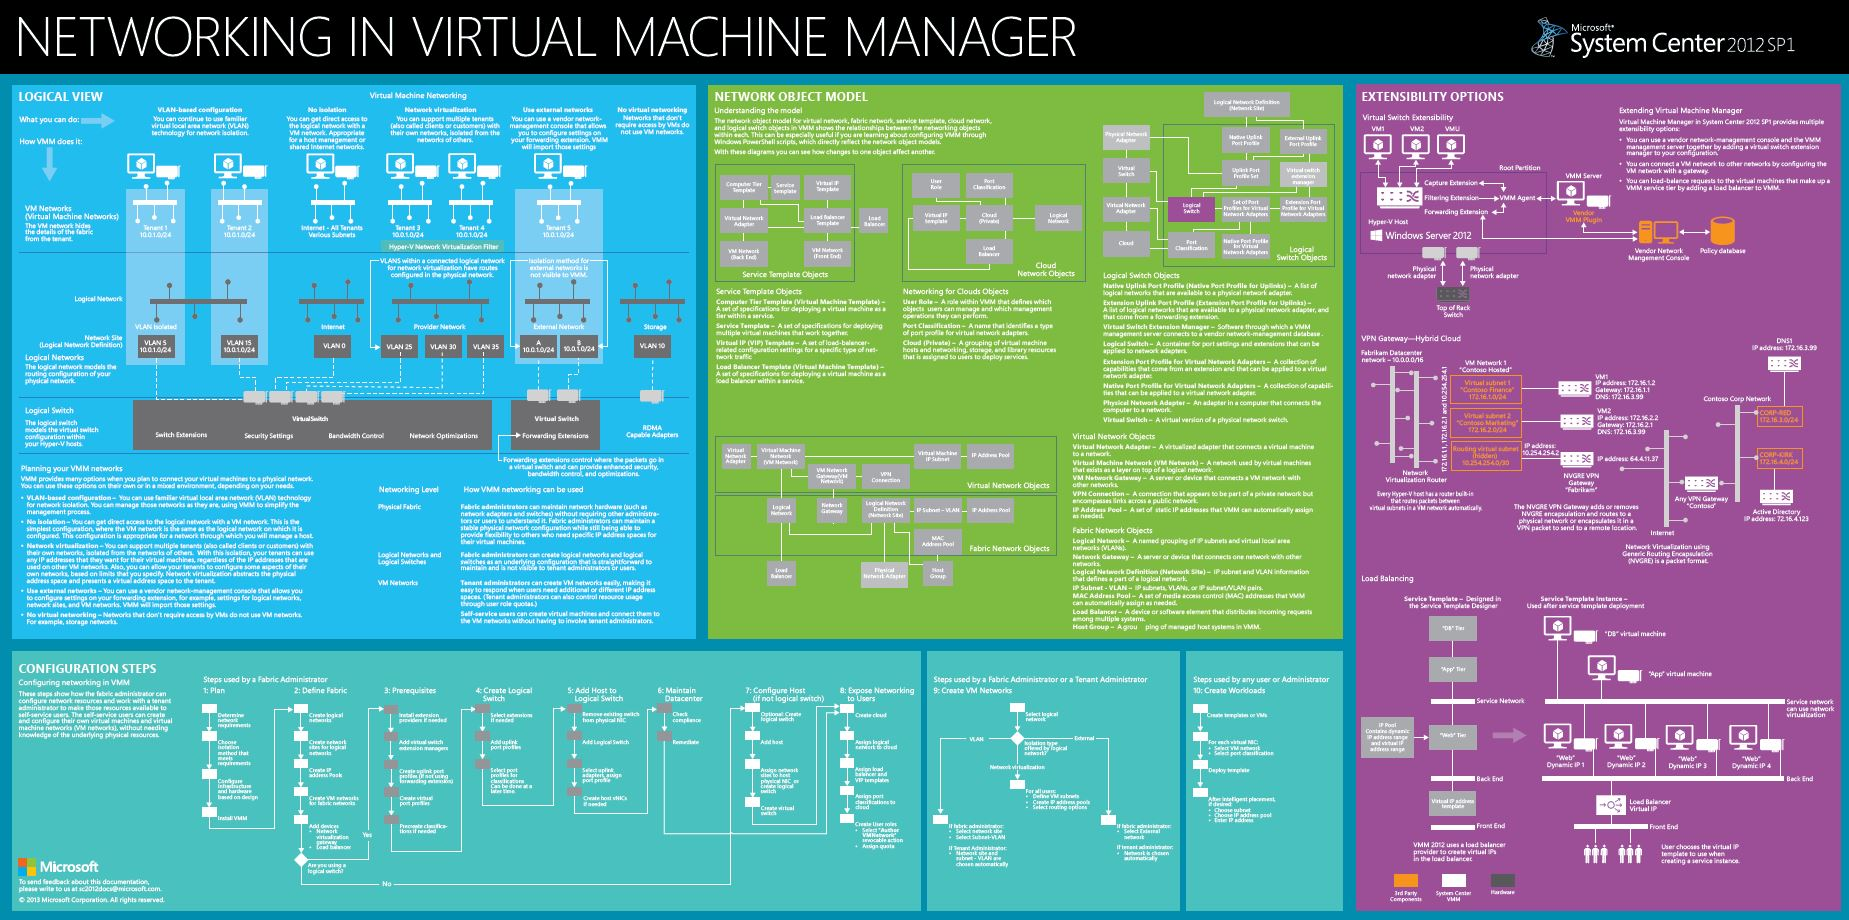 Poster : System Center 2012 SP1 Virtual Machine Manager Networking ...